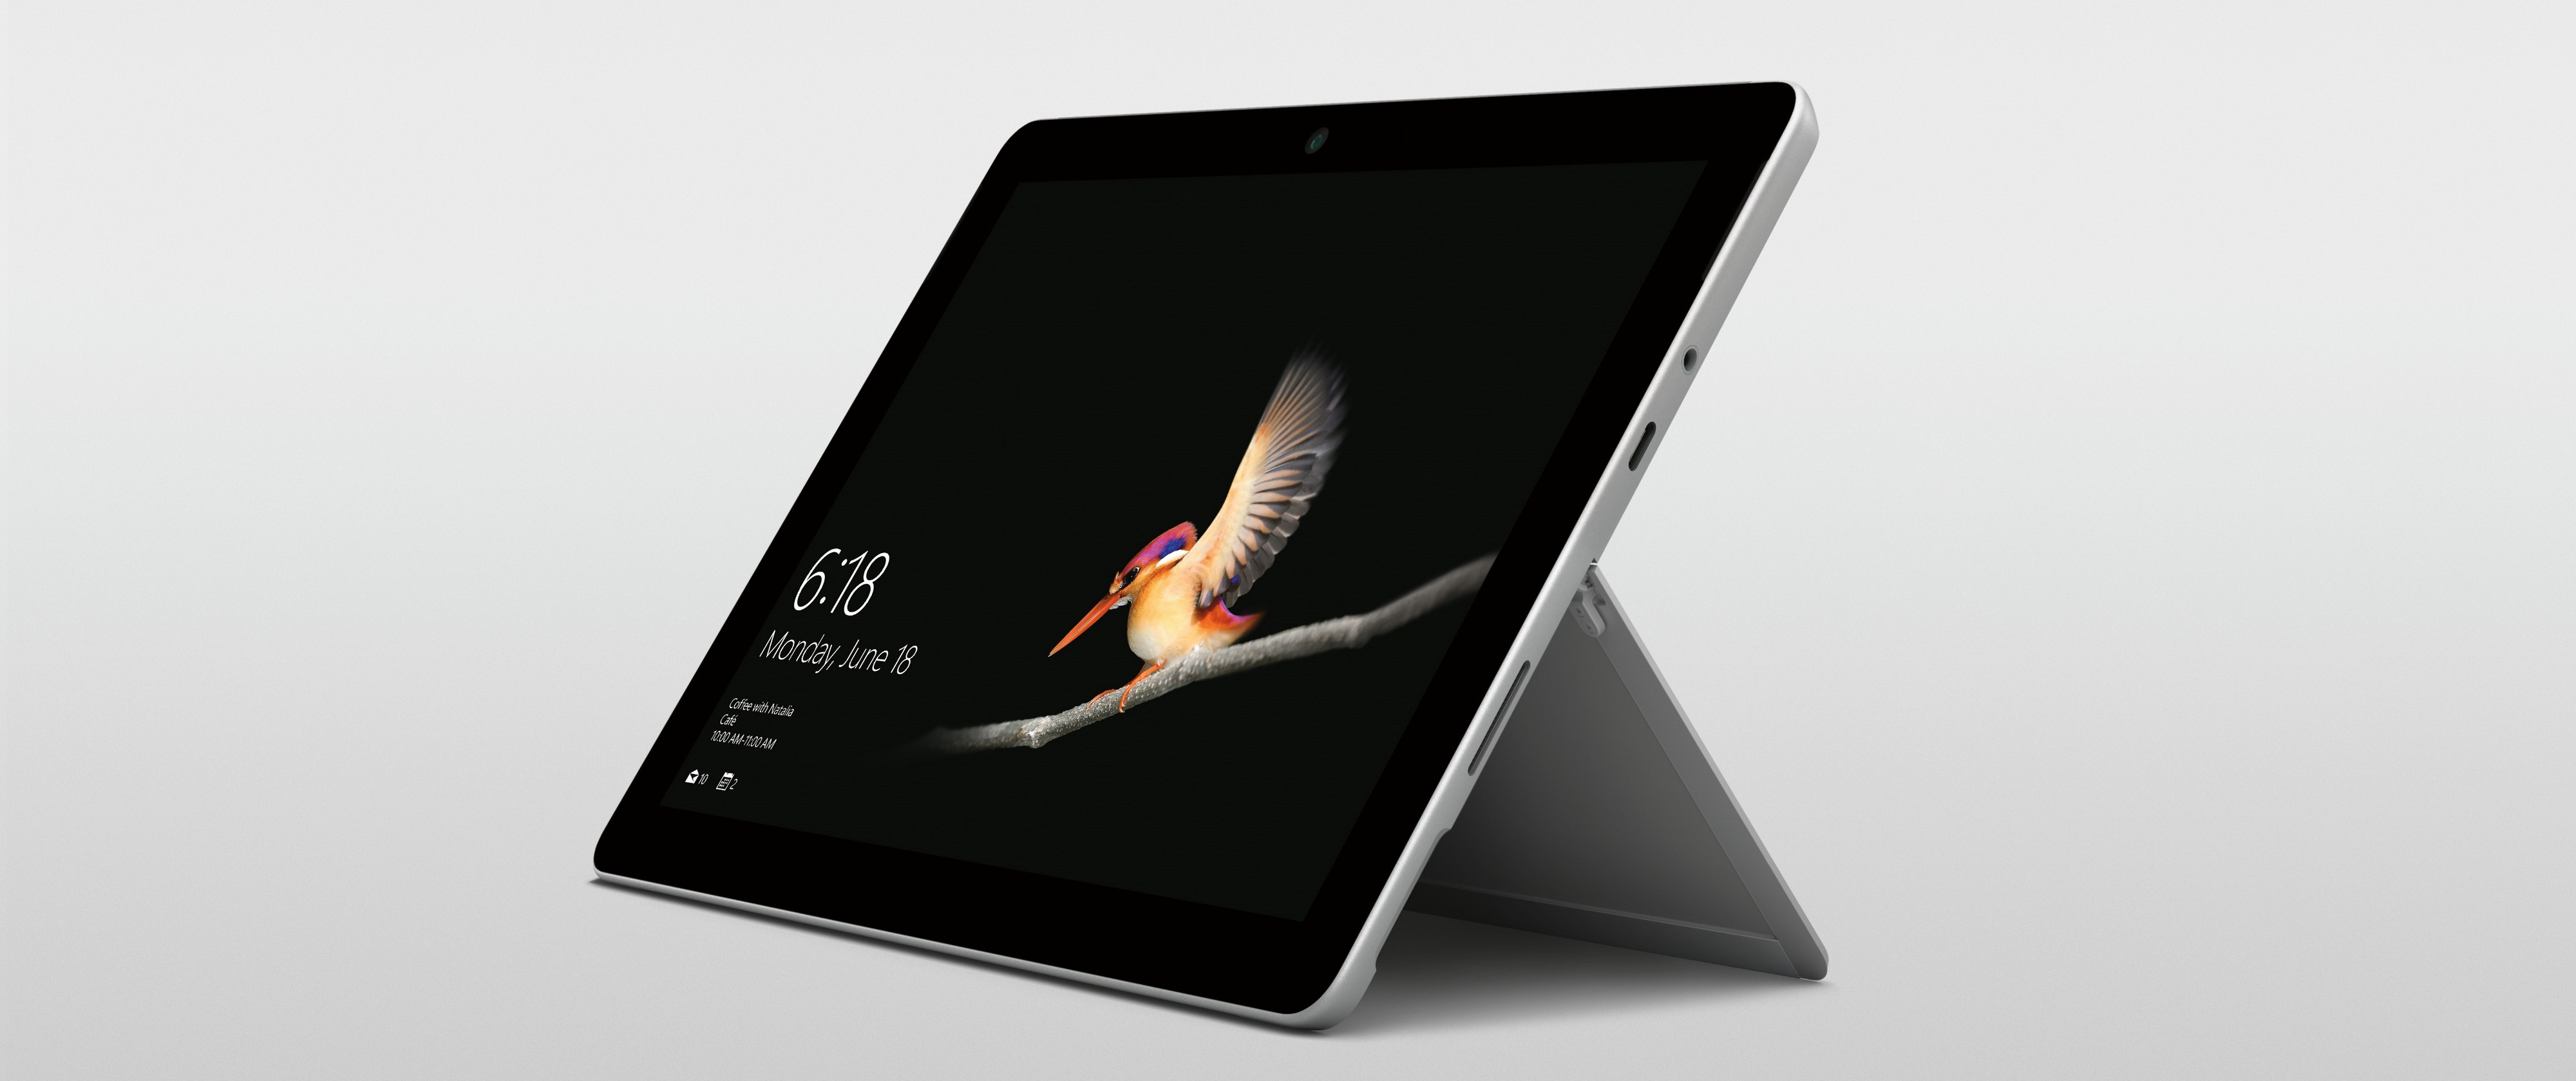 Behold the Microsoft Surface Go, a leap forward and a look back